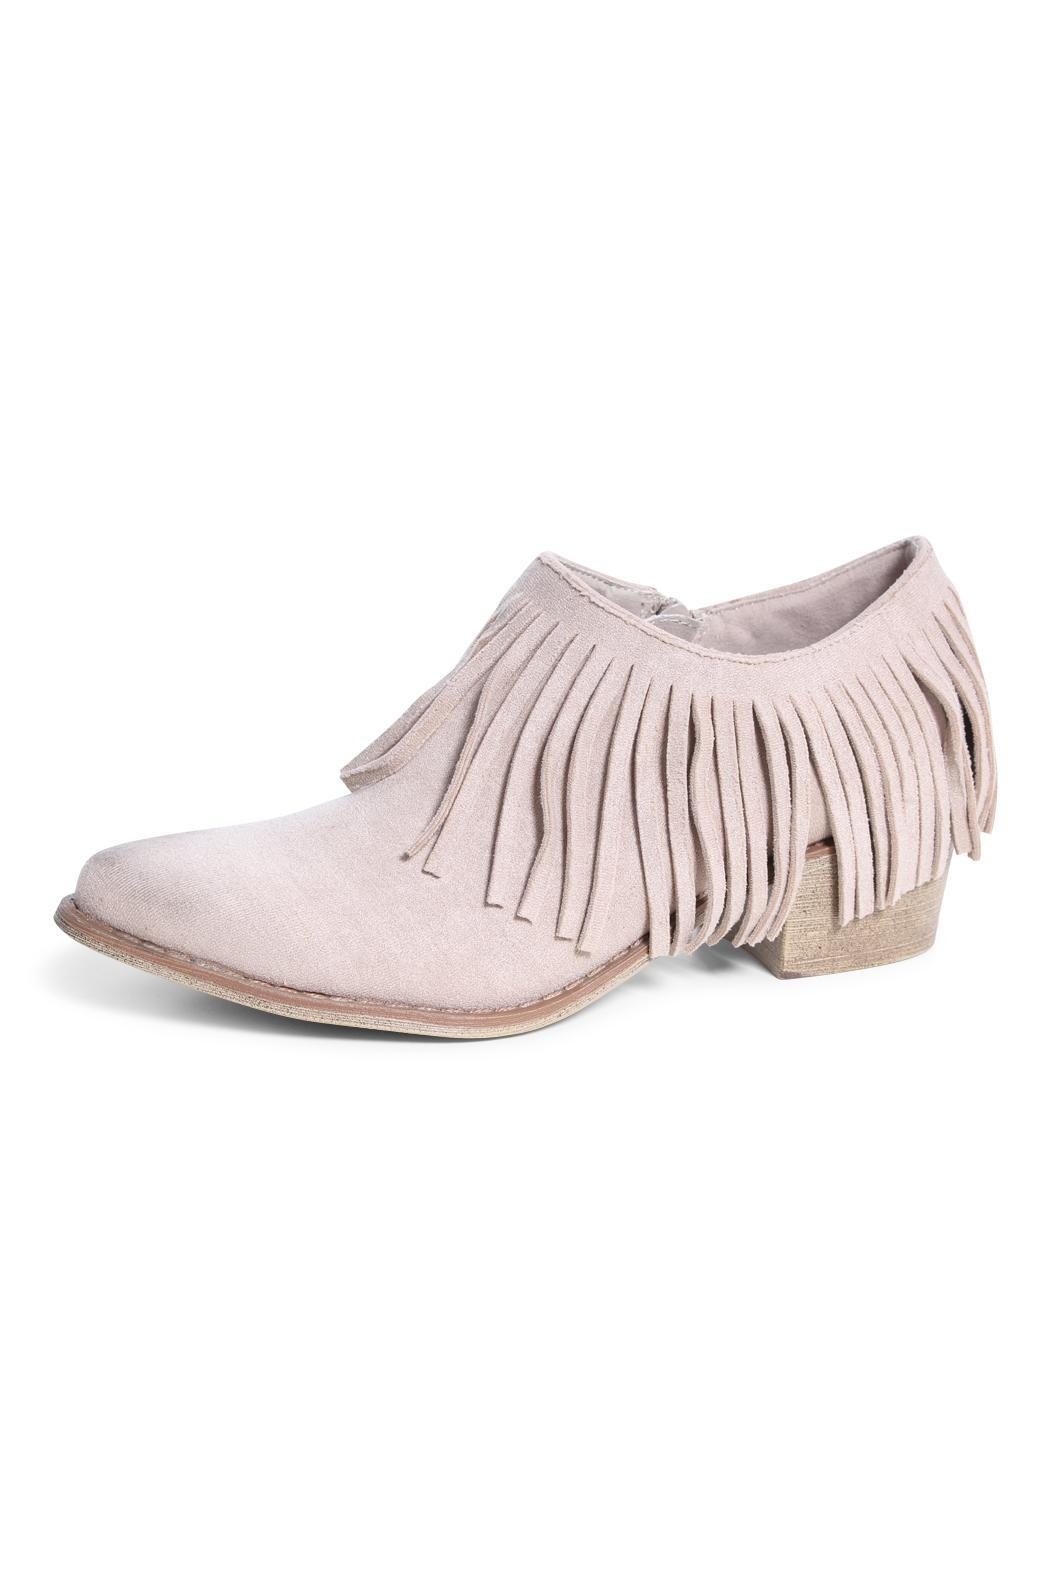 Coconuts by Matisse Fringe Shoe Bootie - Main Image